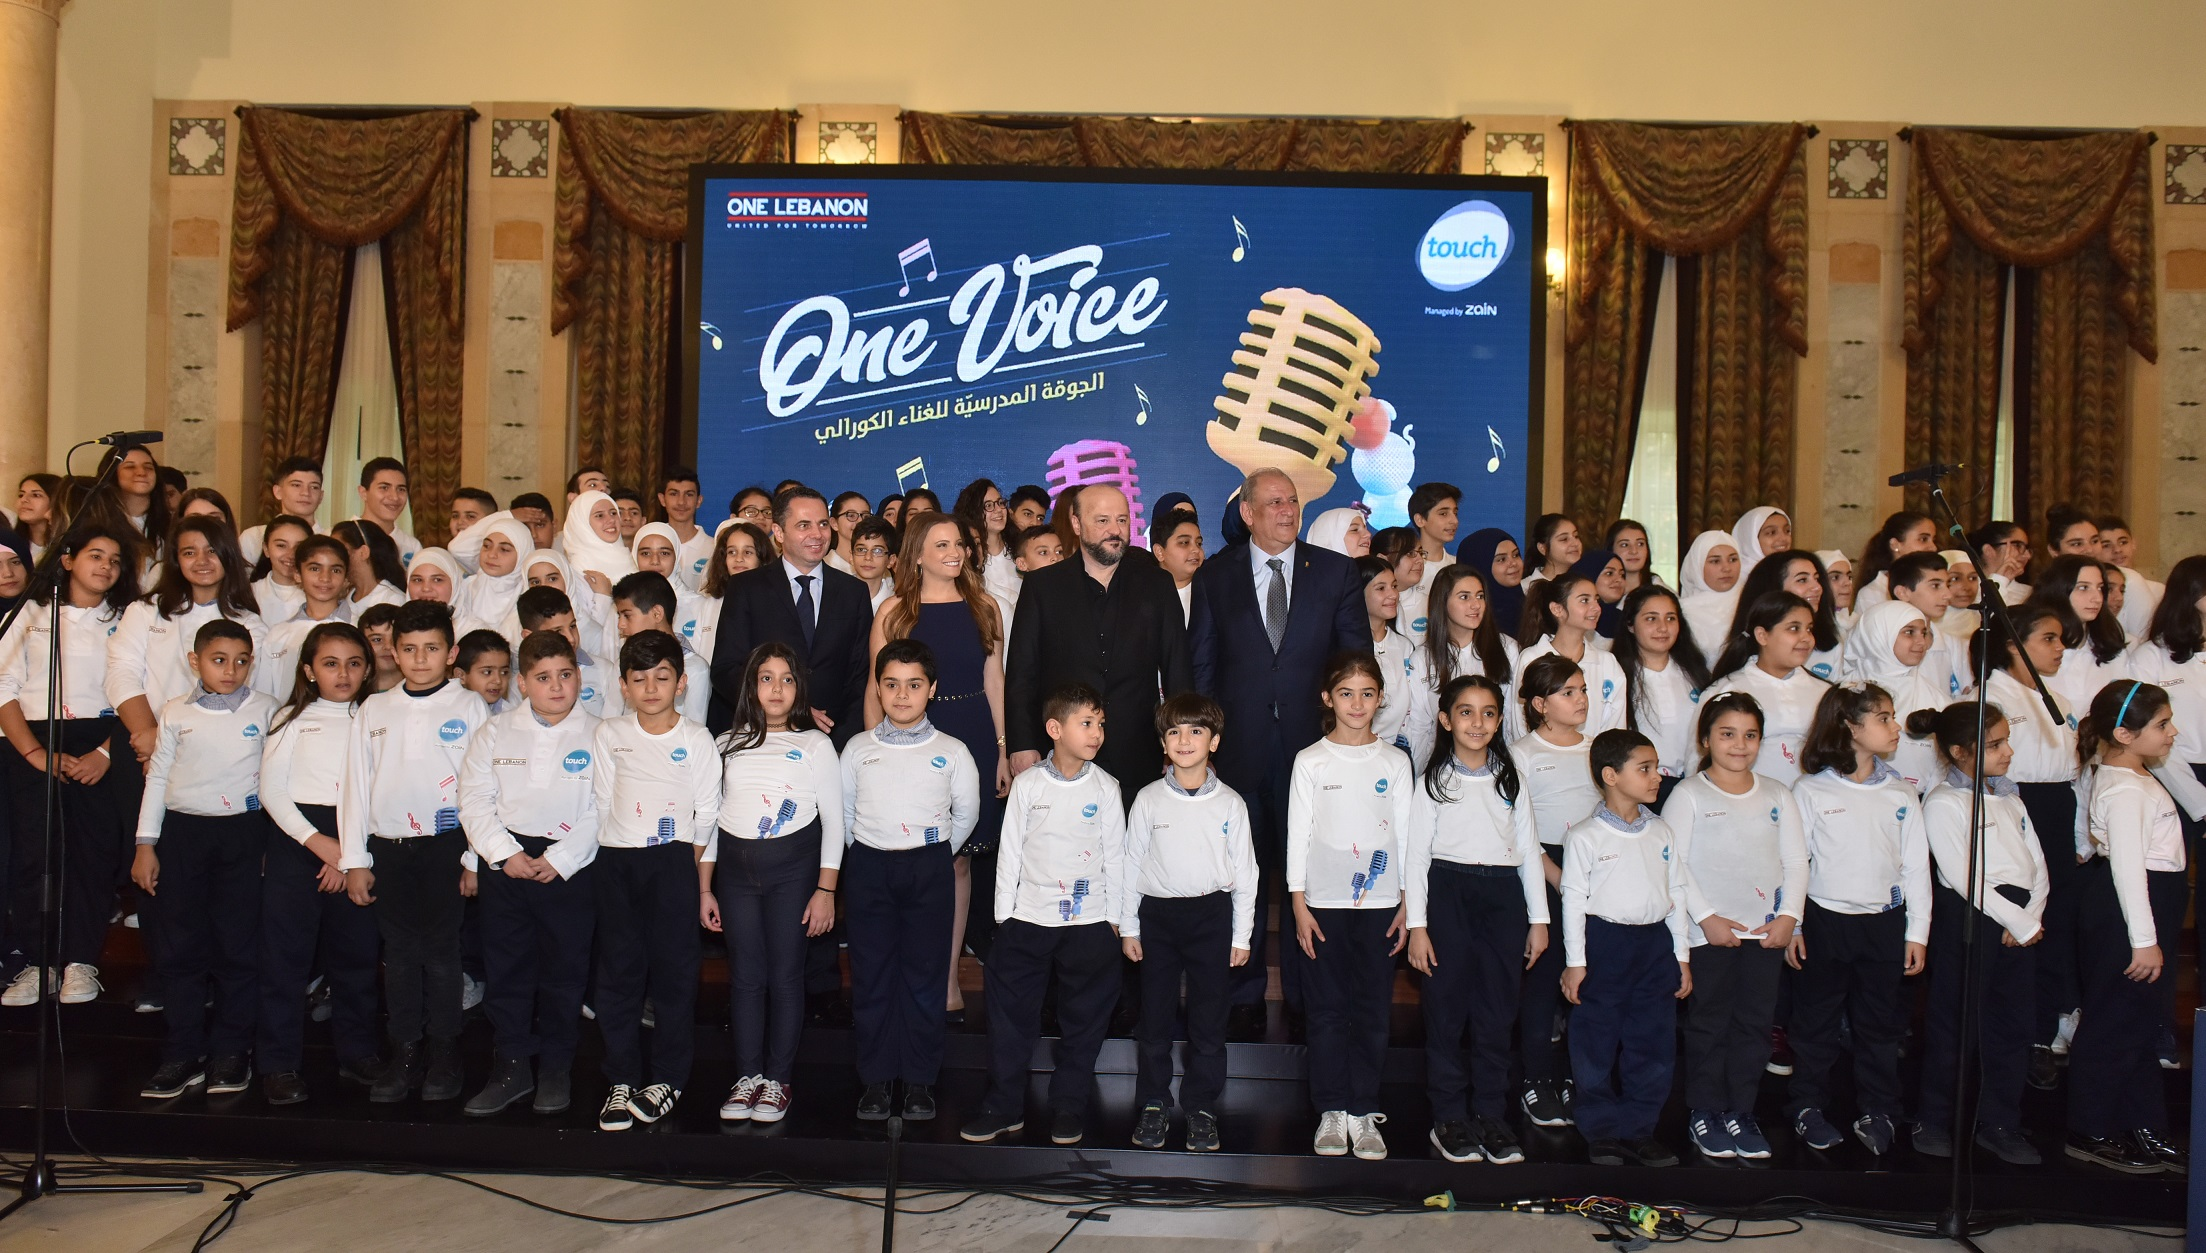 One Voice initiative by touch and One Lebanon